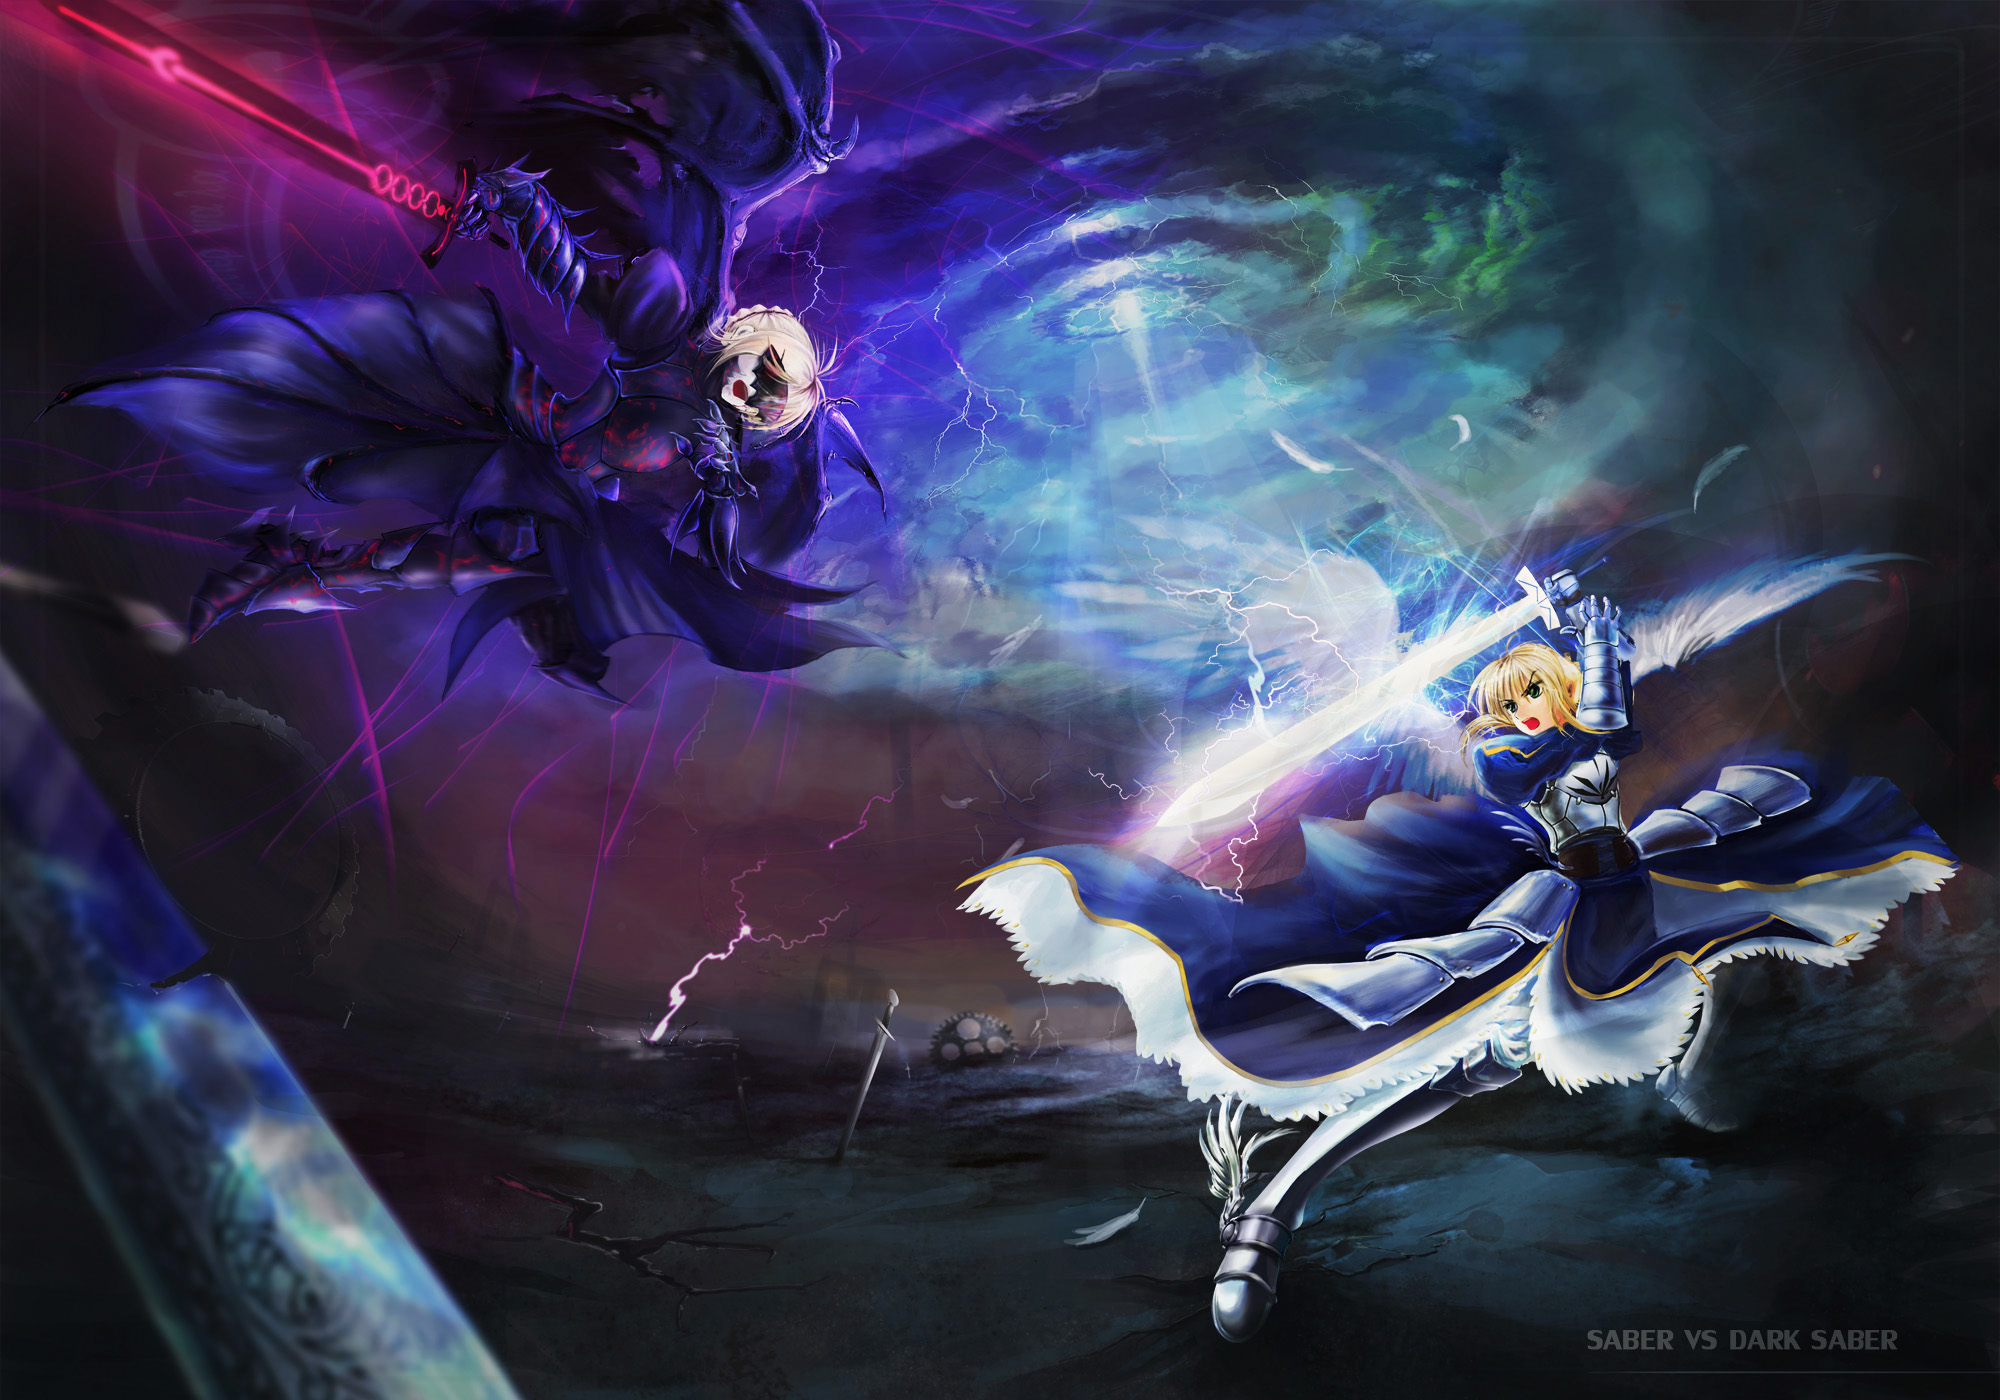 angel armor blonde hair devil fate stay night saber saber alter short 2000x1400